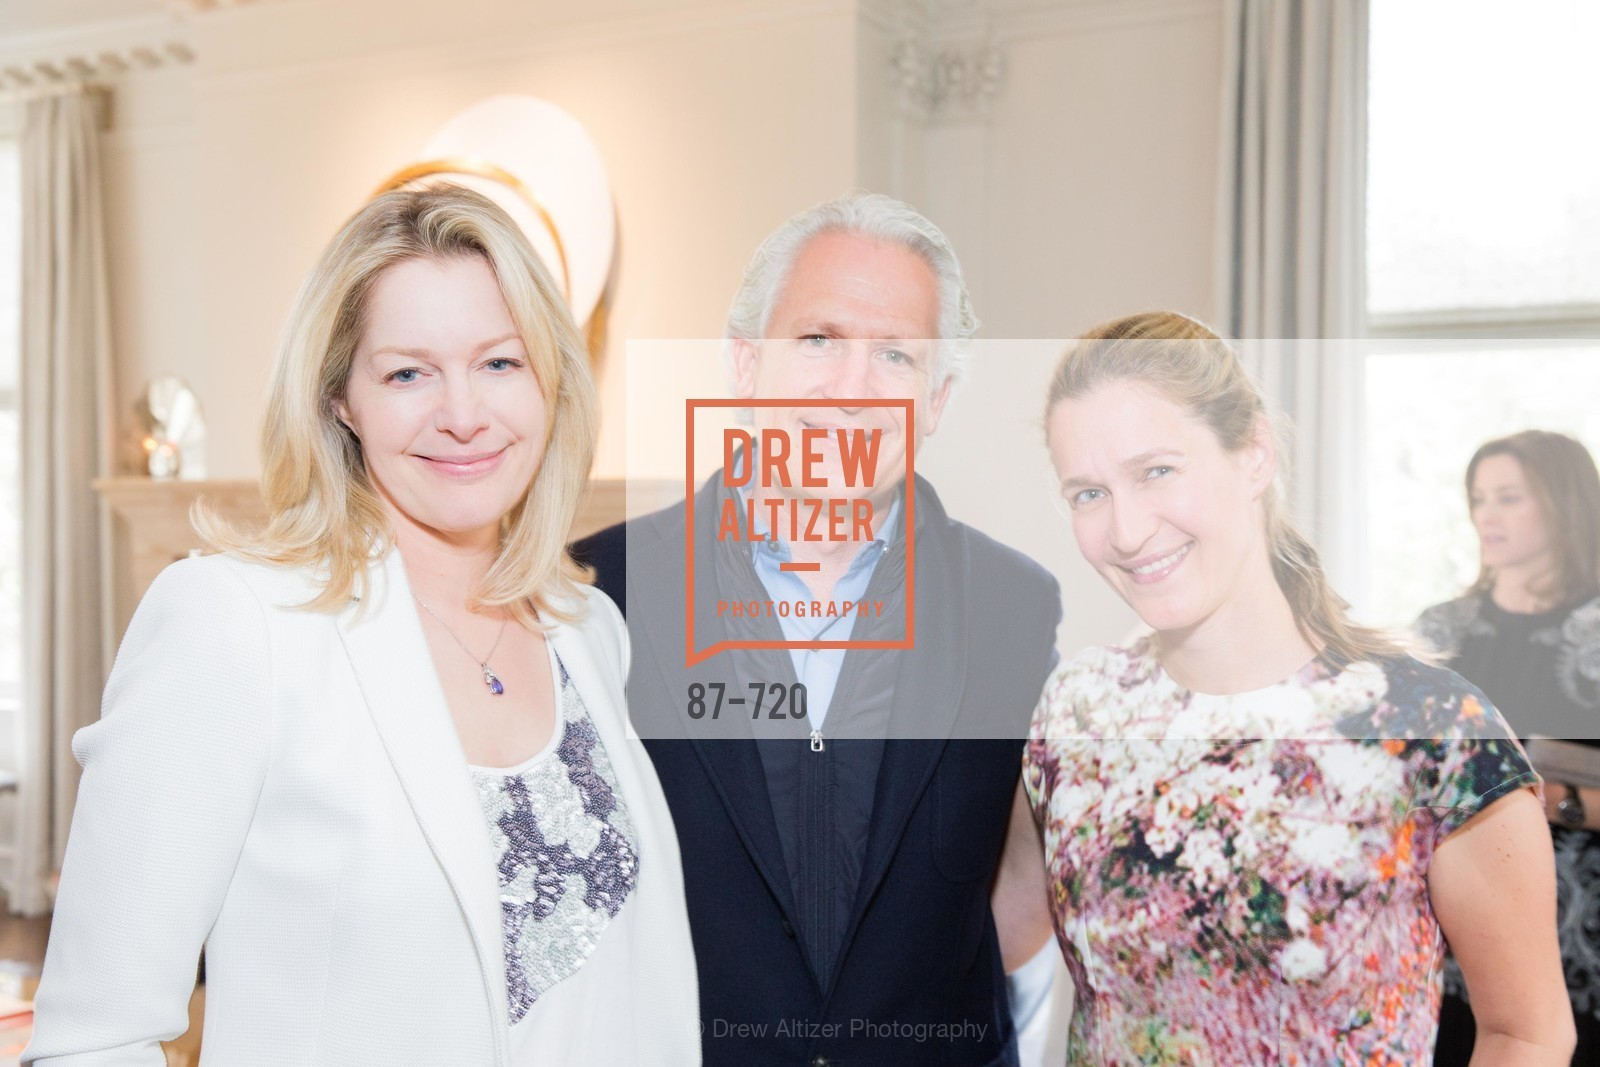 Victoria Raiser, Phillip Raiser, Nina Stanford, C MAGAZINE Editors Cocktail Party, US, May 13th, 2015,Drew Altizer, Drew Altizer Photography, full-service agency, private events, San Francisco photographer, photographer california